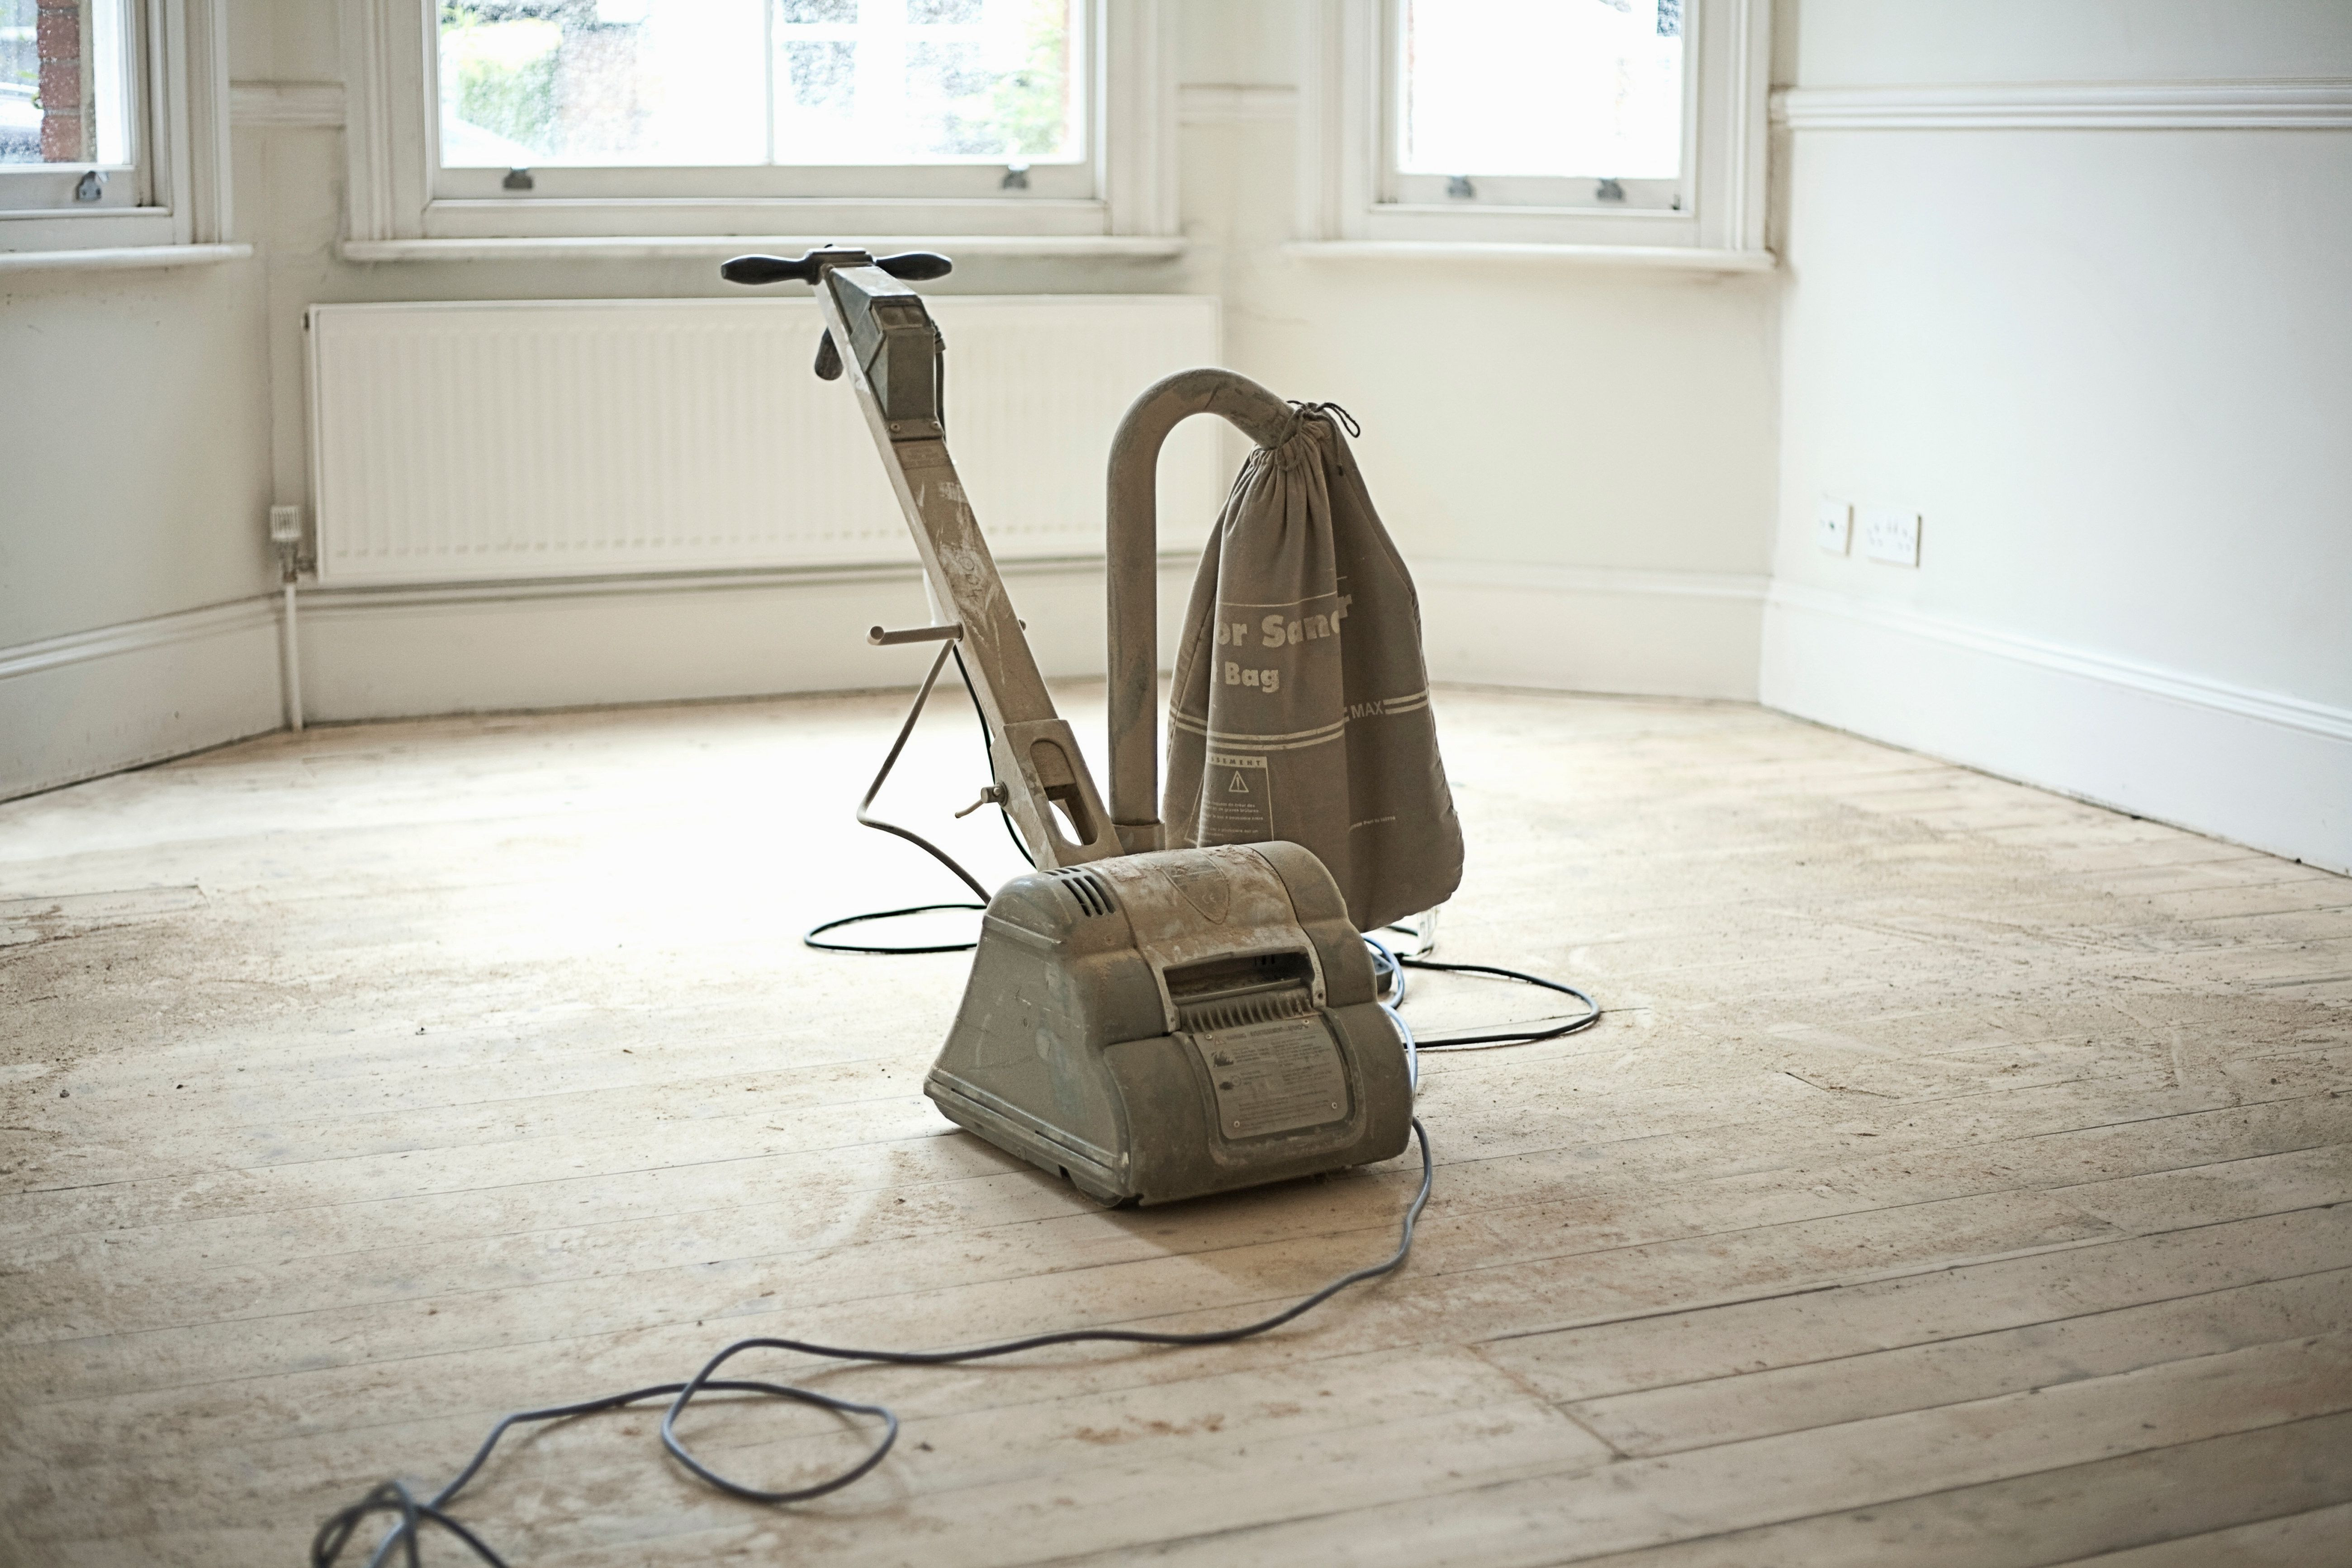 hardwood floor refinishing stamford ct of floor sanders to rent when finishing your wood floor with sander on wooden floorboards of new home 179707189 588760815f9b58bdb3fed440